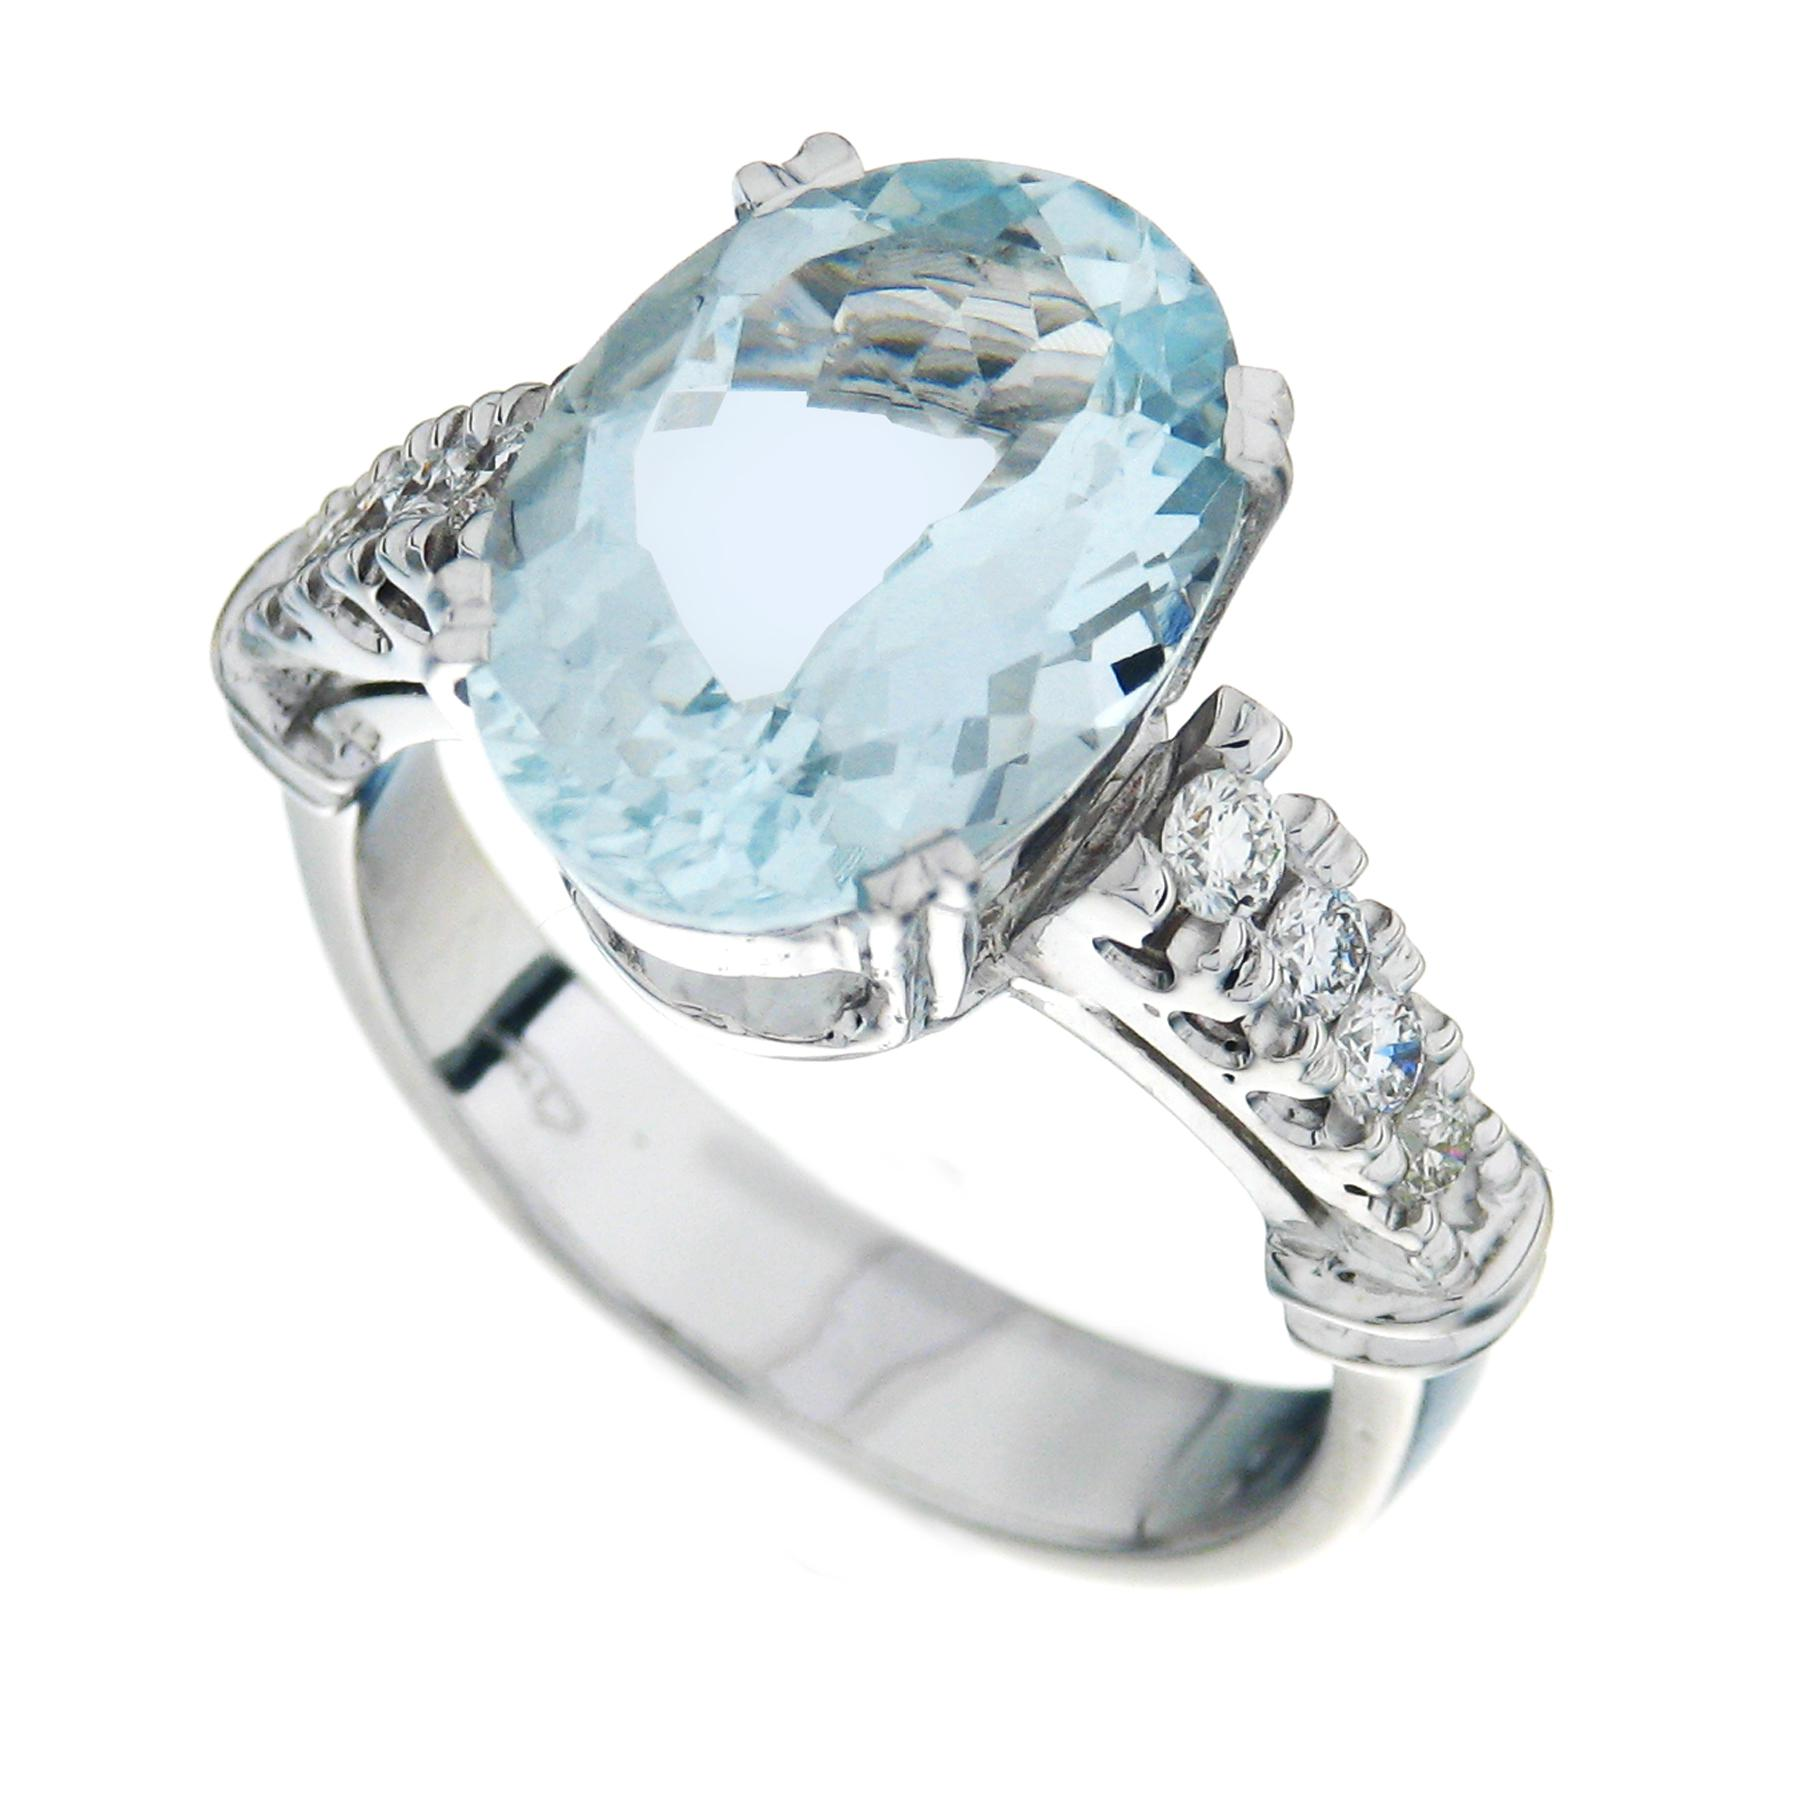 Gival 18ct White Gold Diamond & Aquamarine Ring 3927/A